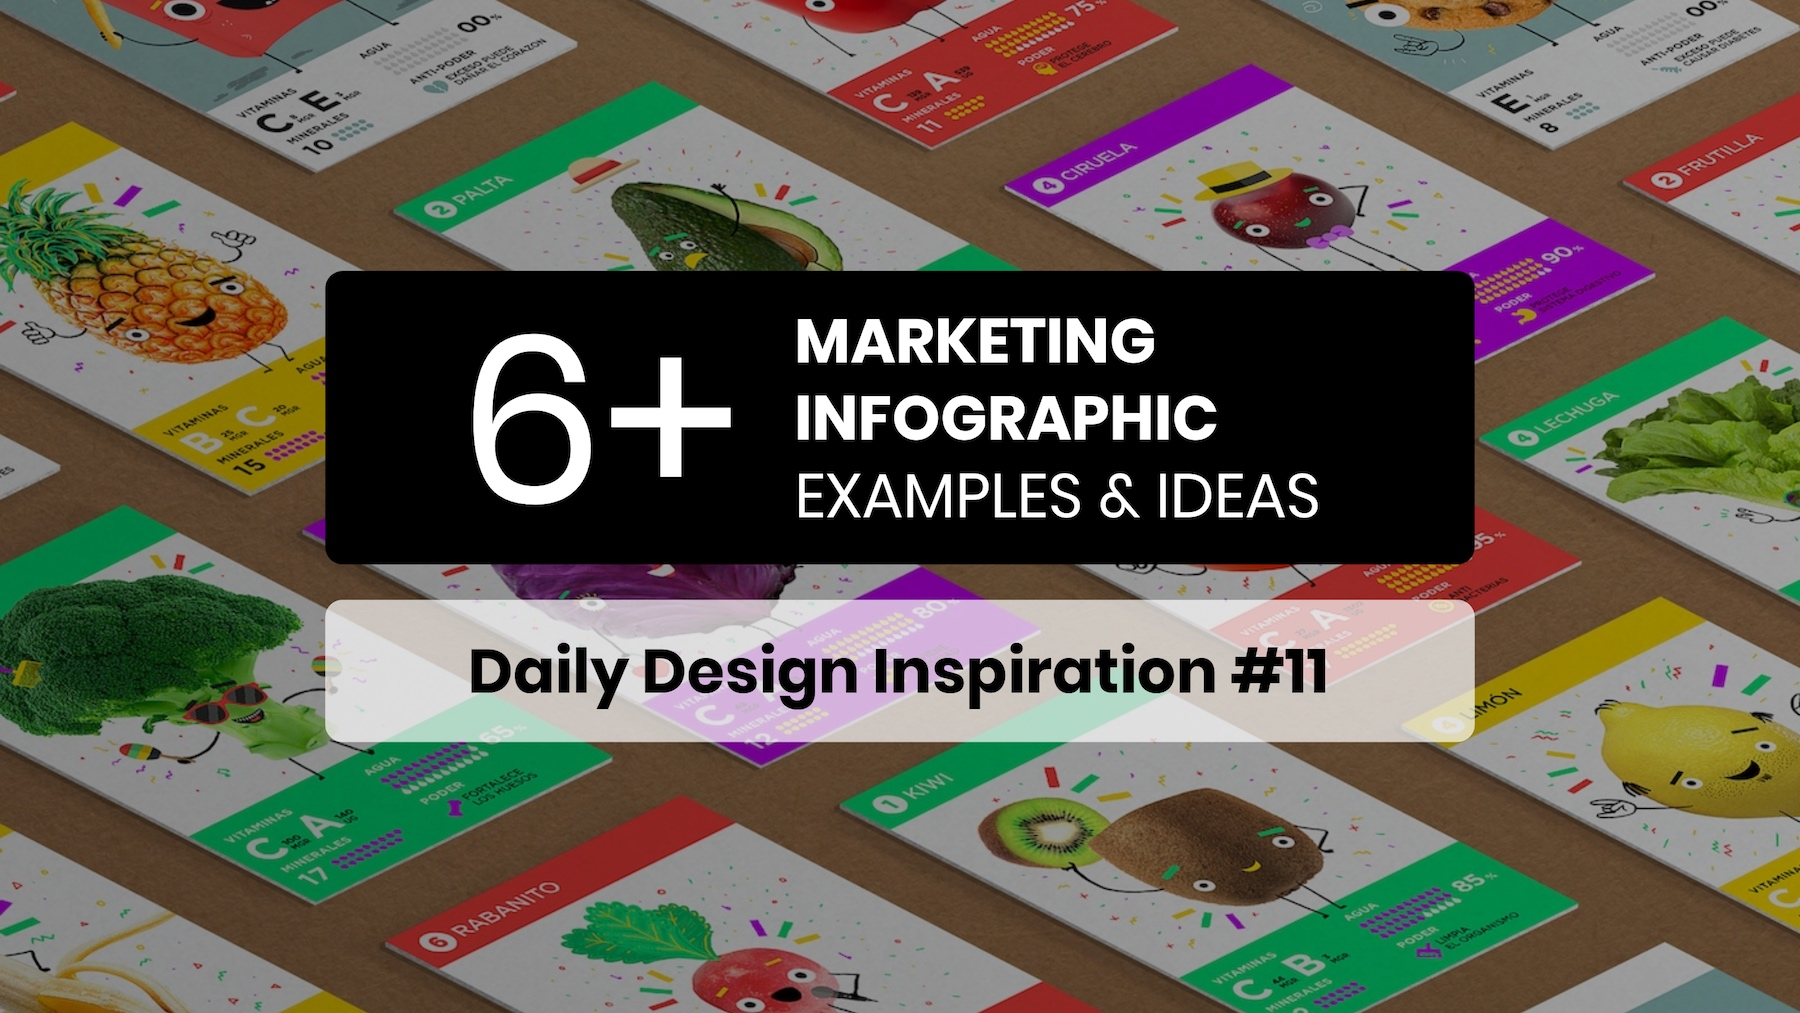 6+ Marketing Infographic Inspiration Examples & Templates - Daily Design Inspiration